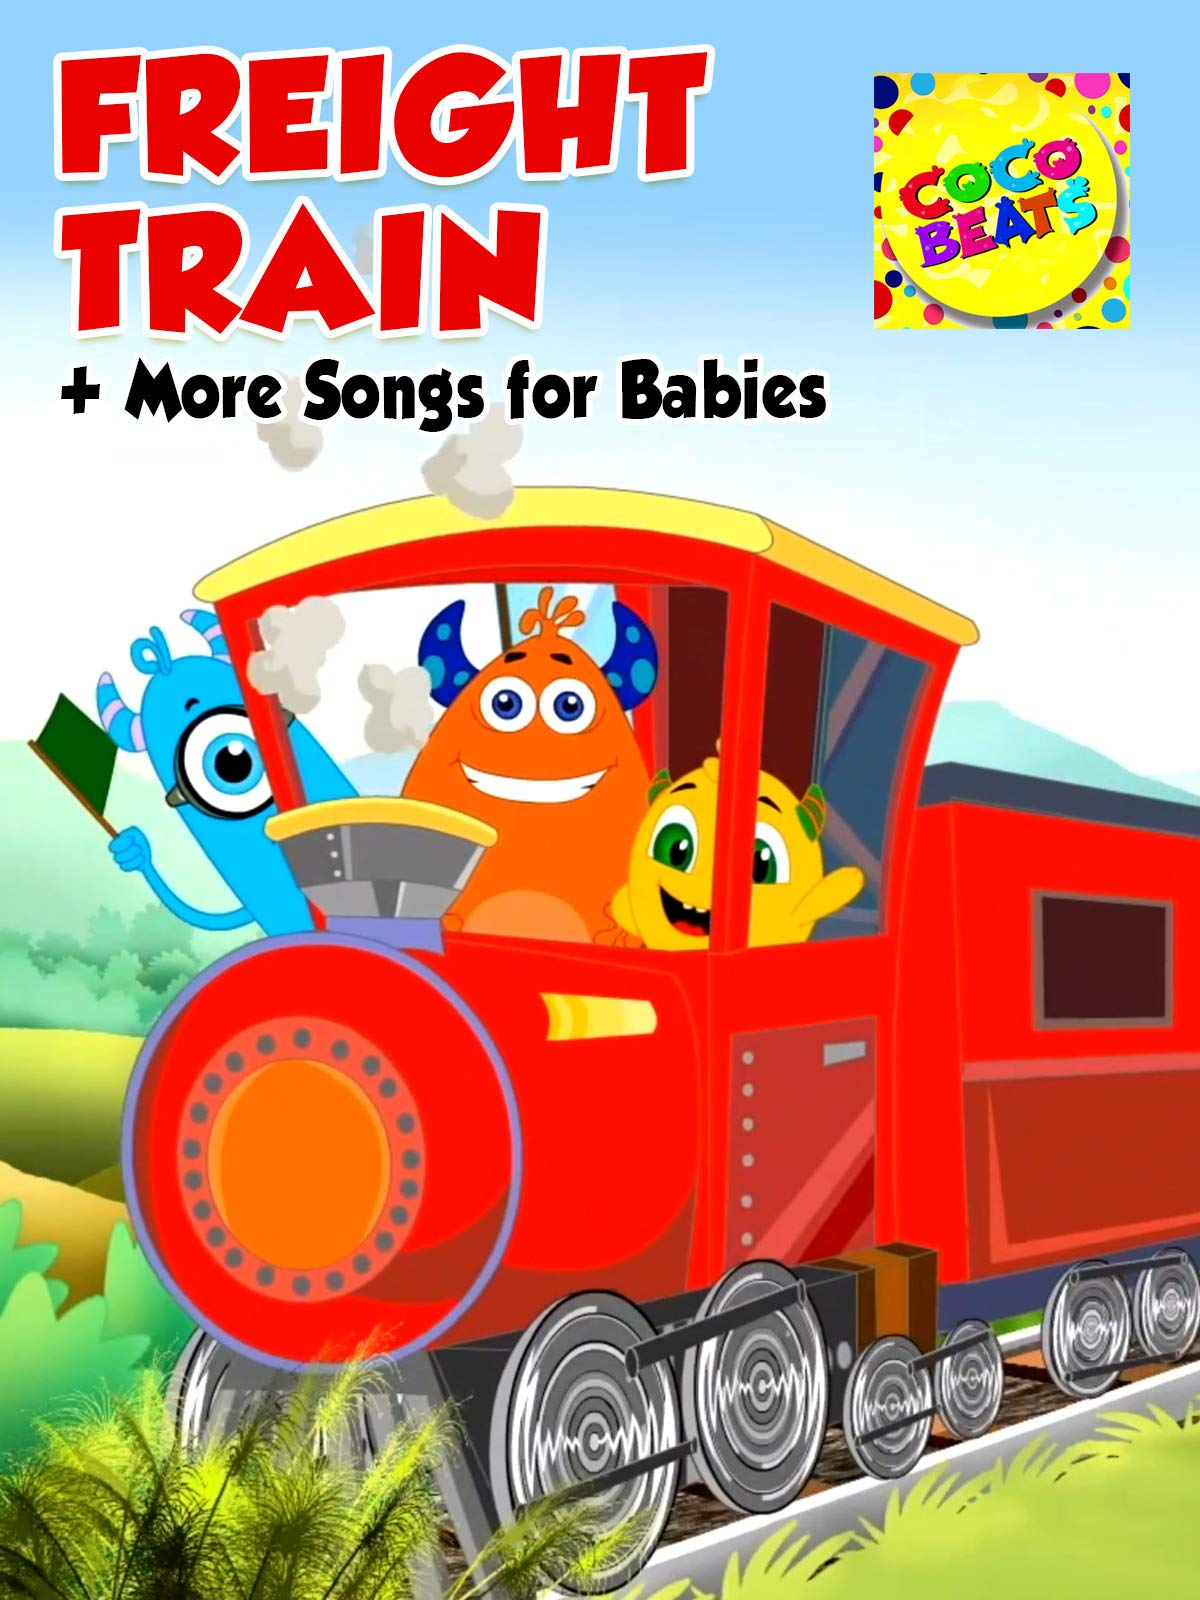 Freight Train + More Songs for Babies - Coco Beats